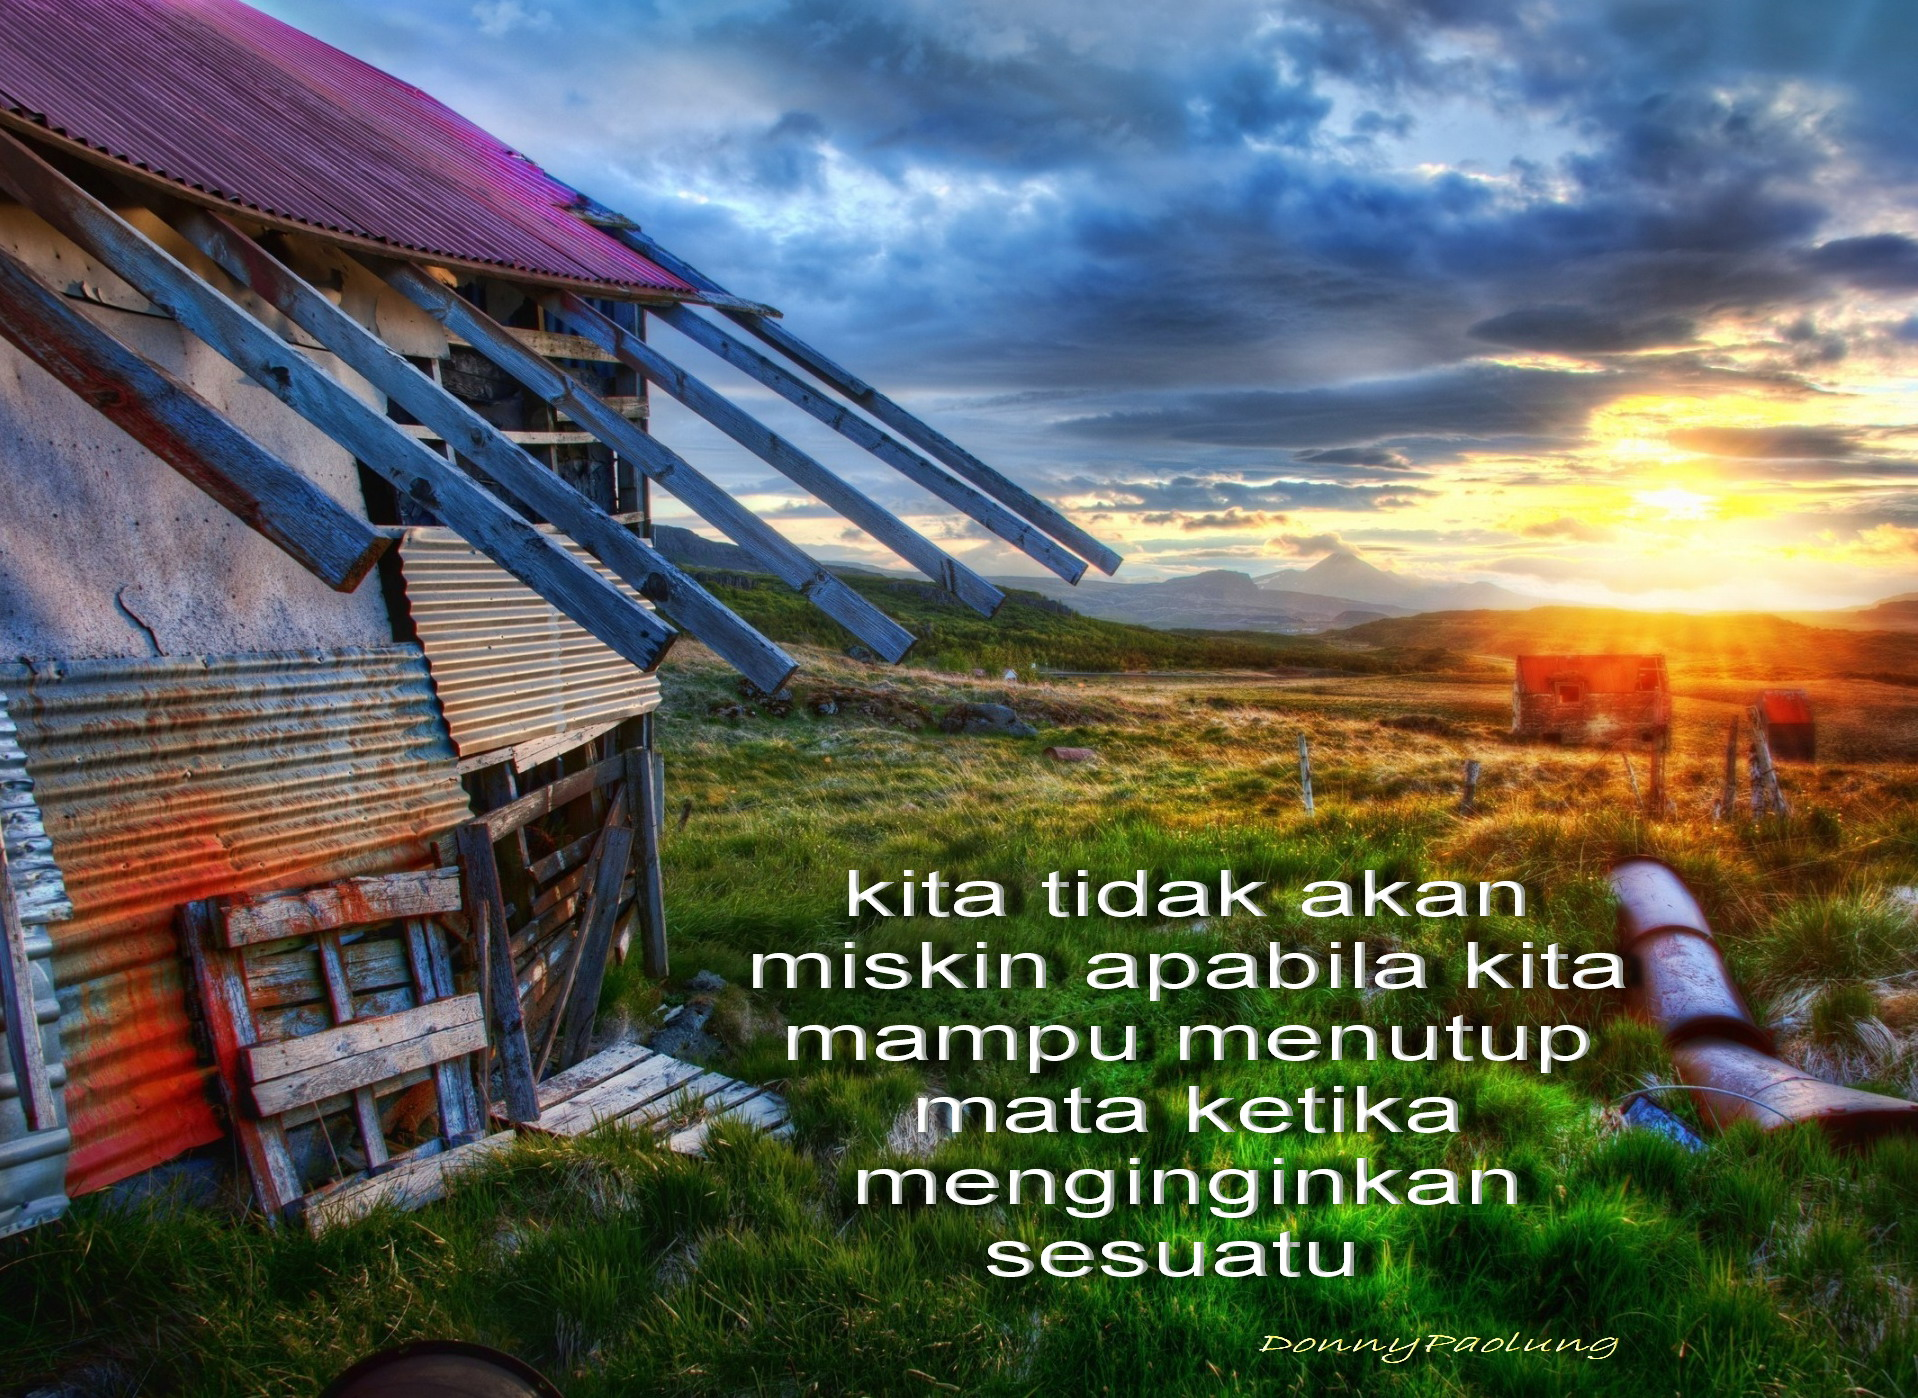 http://donnypaolung.files.wordpress.com/2012/05/tidak-akan-miskin.jpg